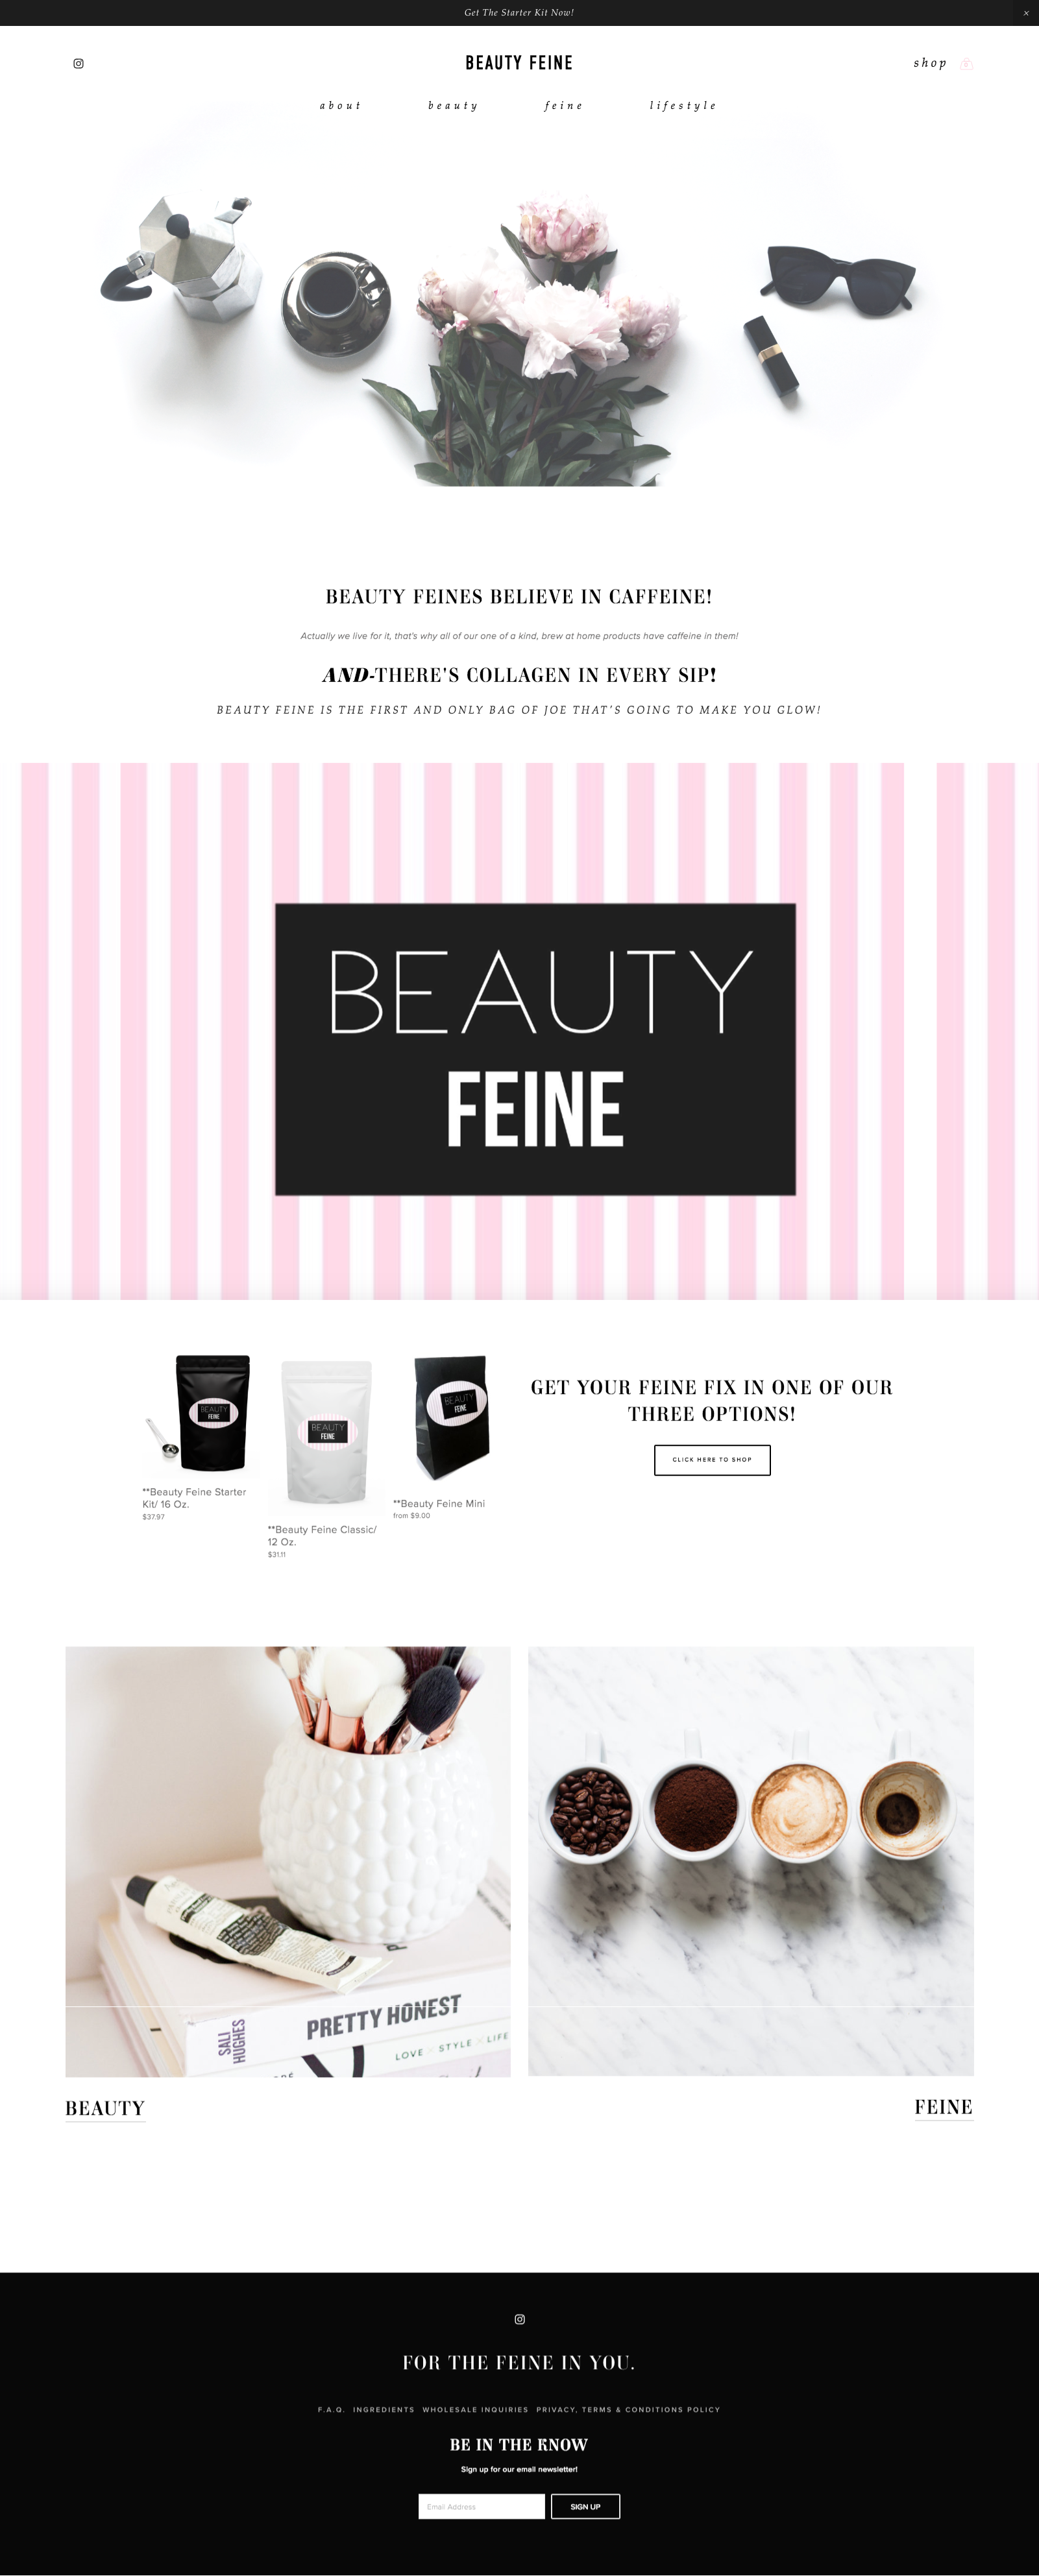 screencapture-beautyfeine-2018-06-01-19_07_05.png